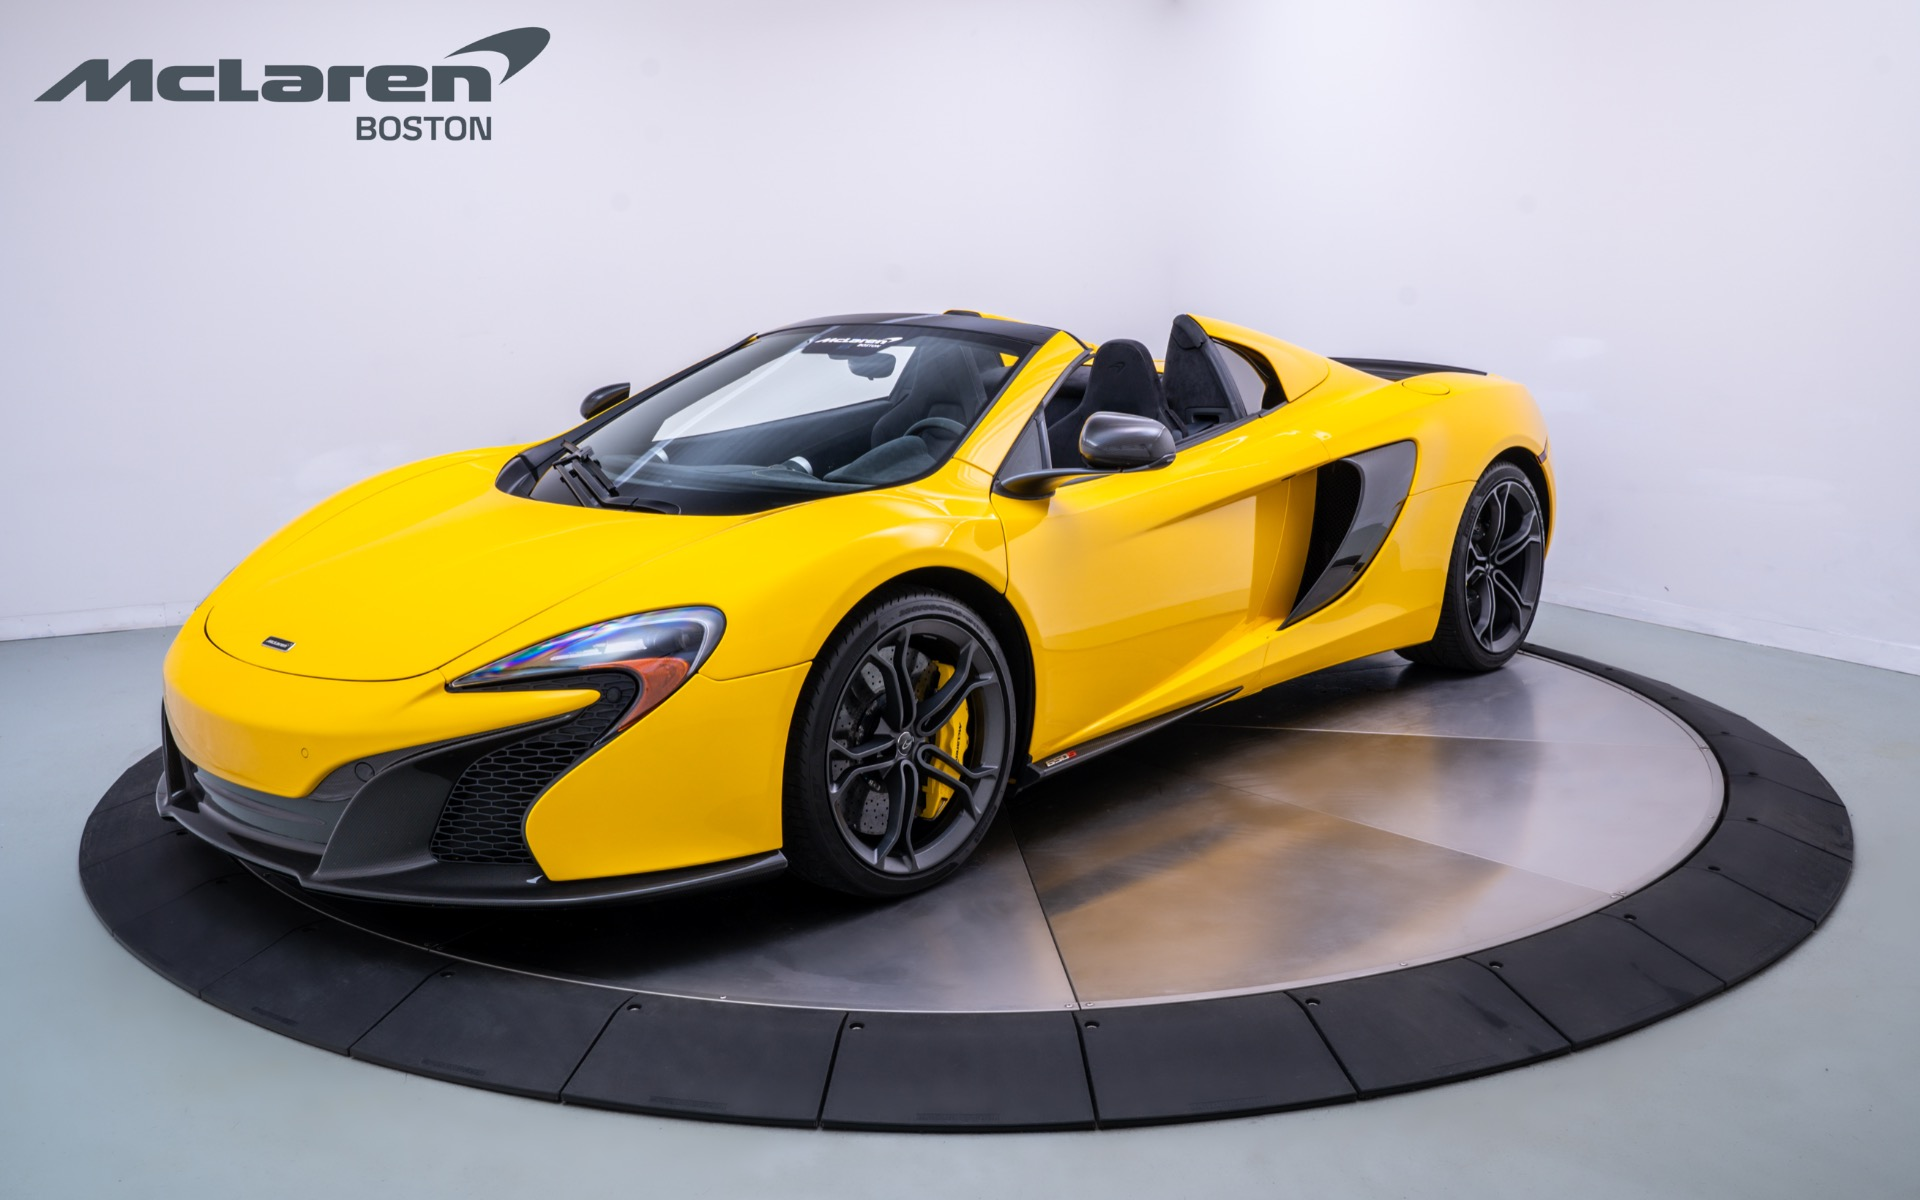 2016 mclaren 650s spider for sale in norwell ma 006190 mclaren boston. Black Bedroom Furniture Sets. Home Design Ideas